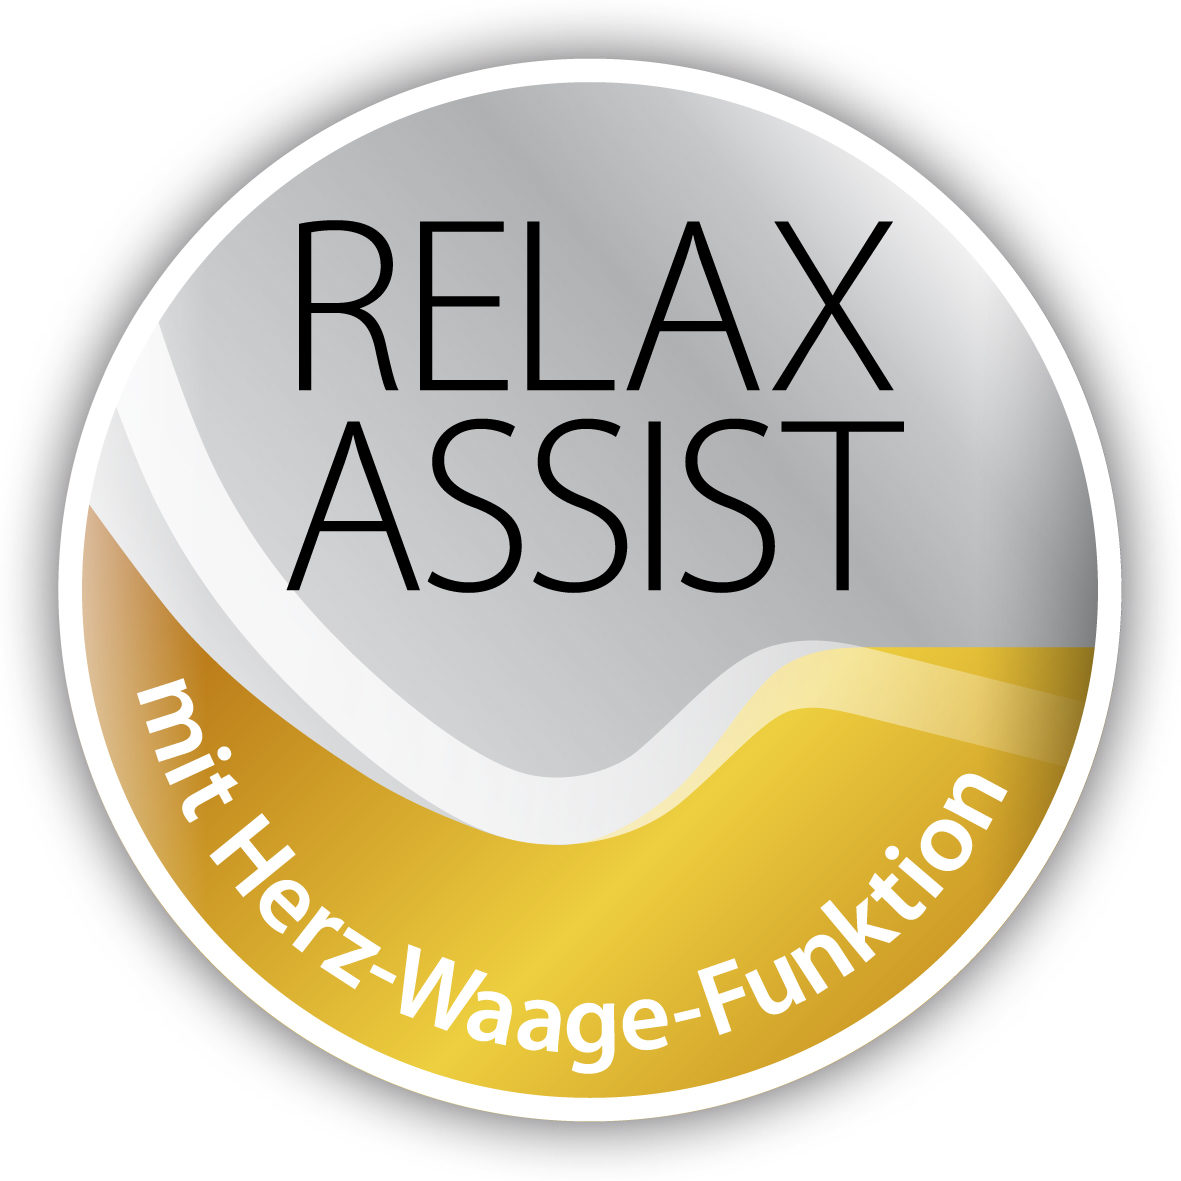 RELAX ASSIST